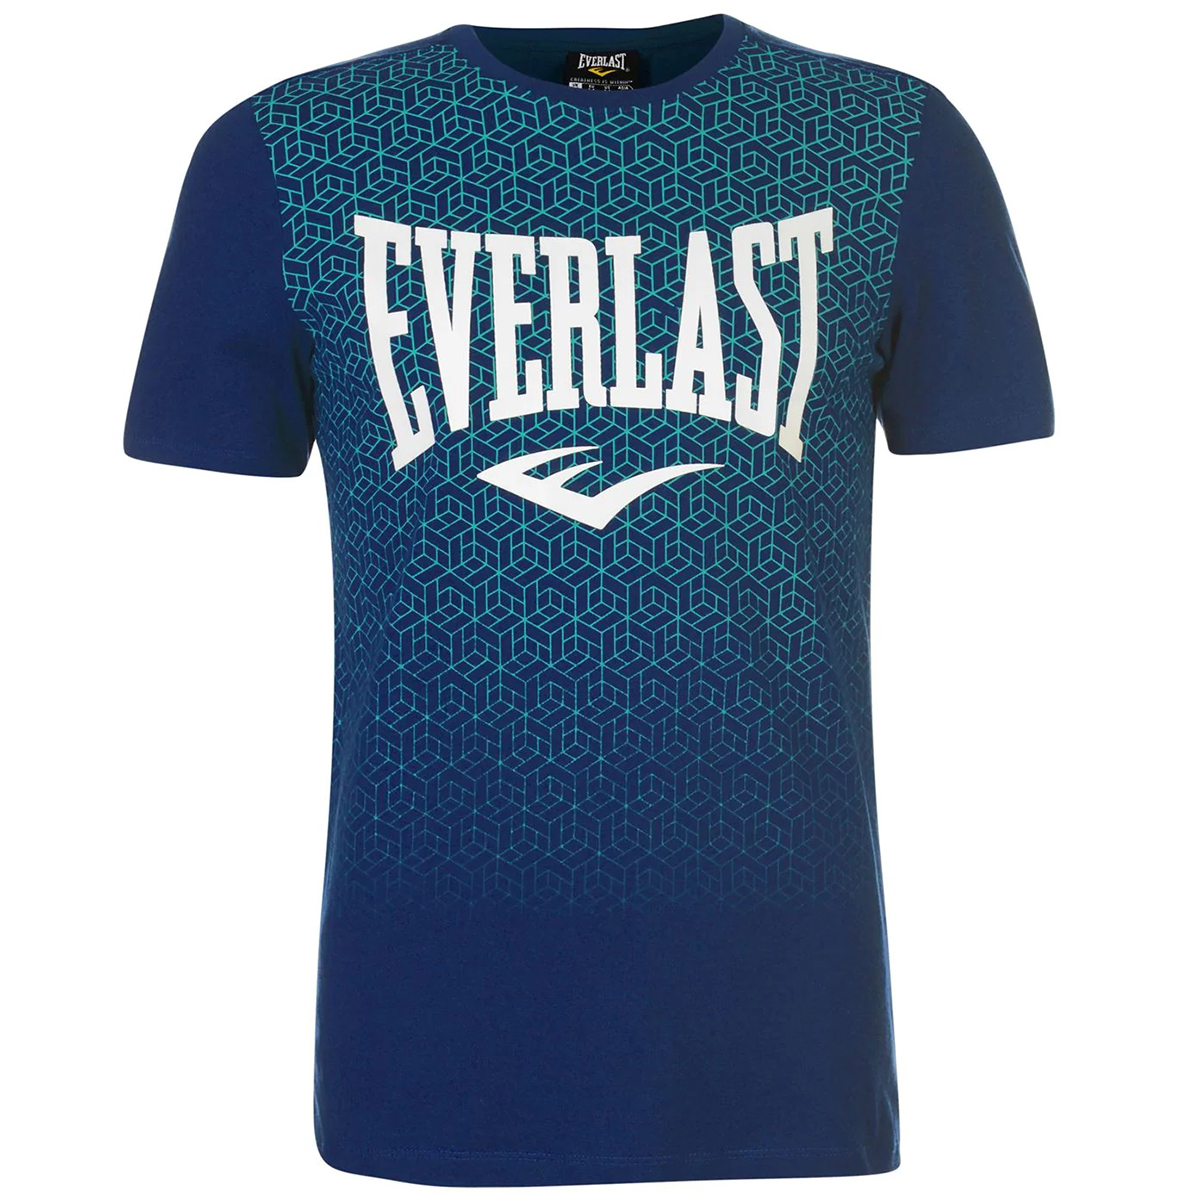 Everlast Men's Geo Print Short-Sleeve Tee - Blue, 3XL